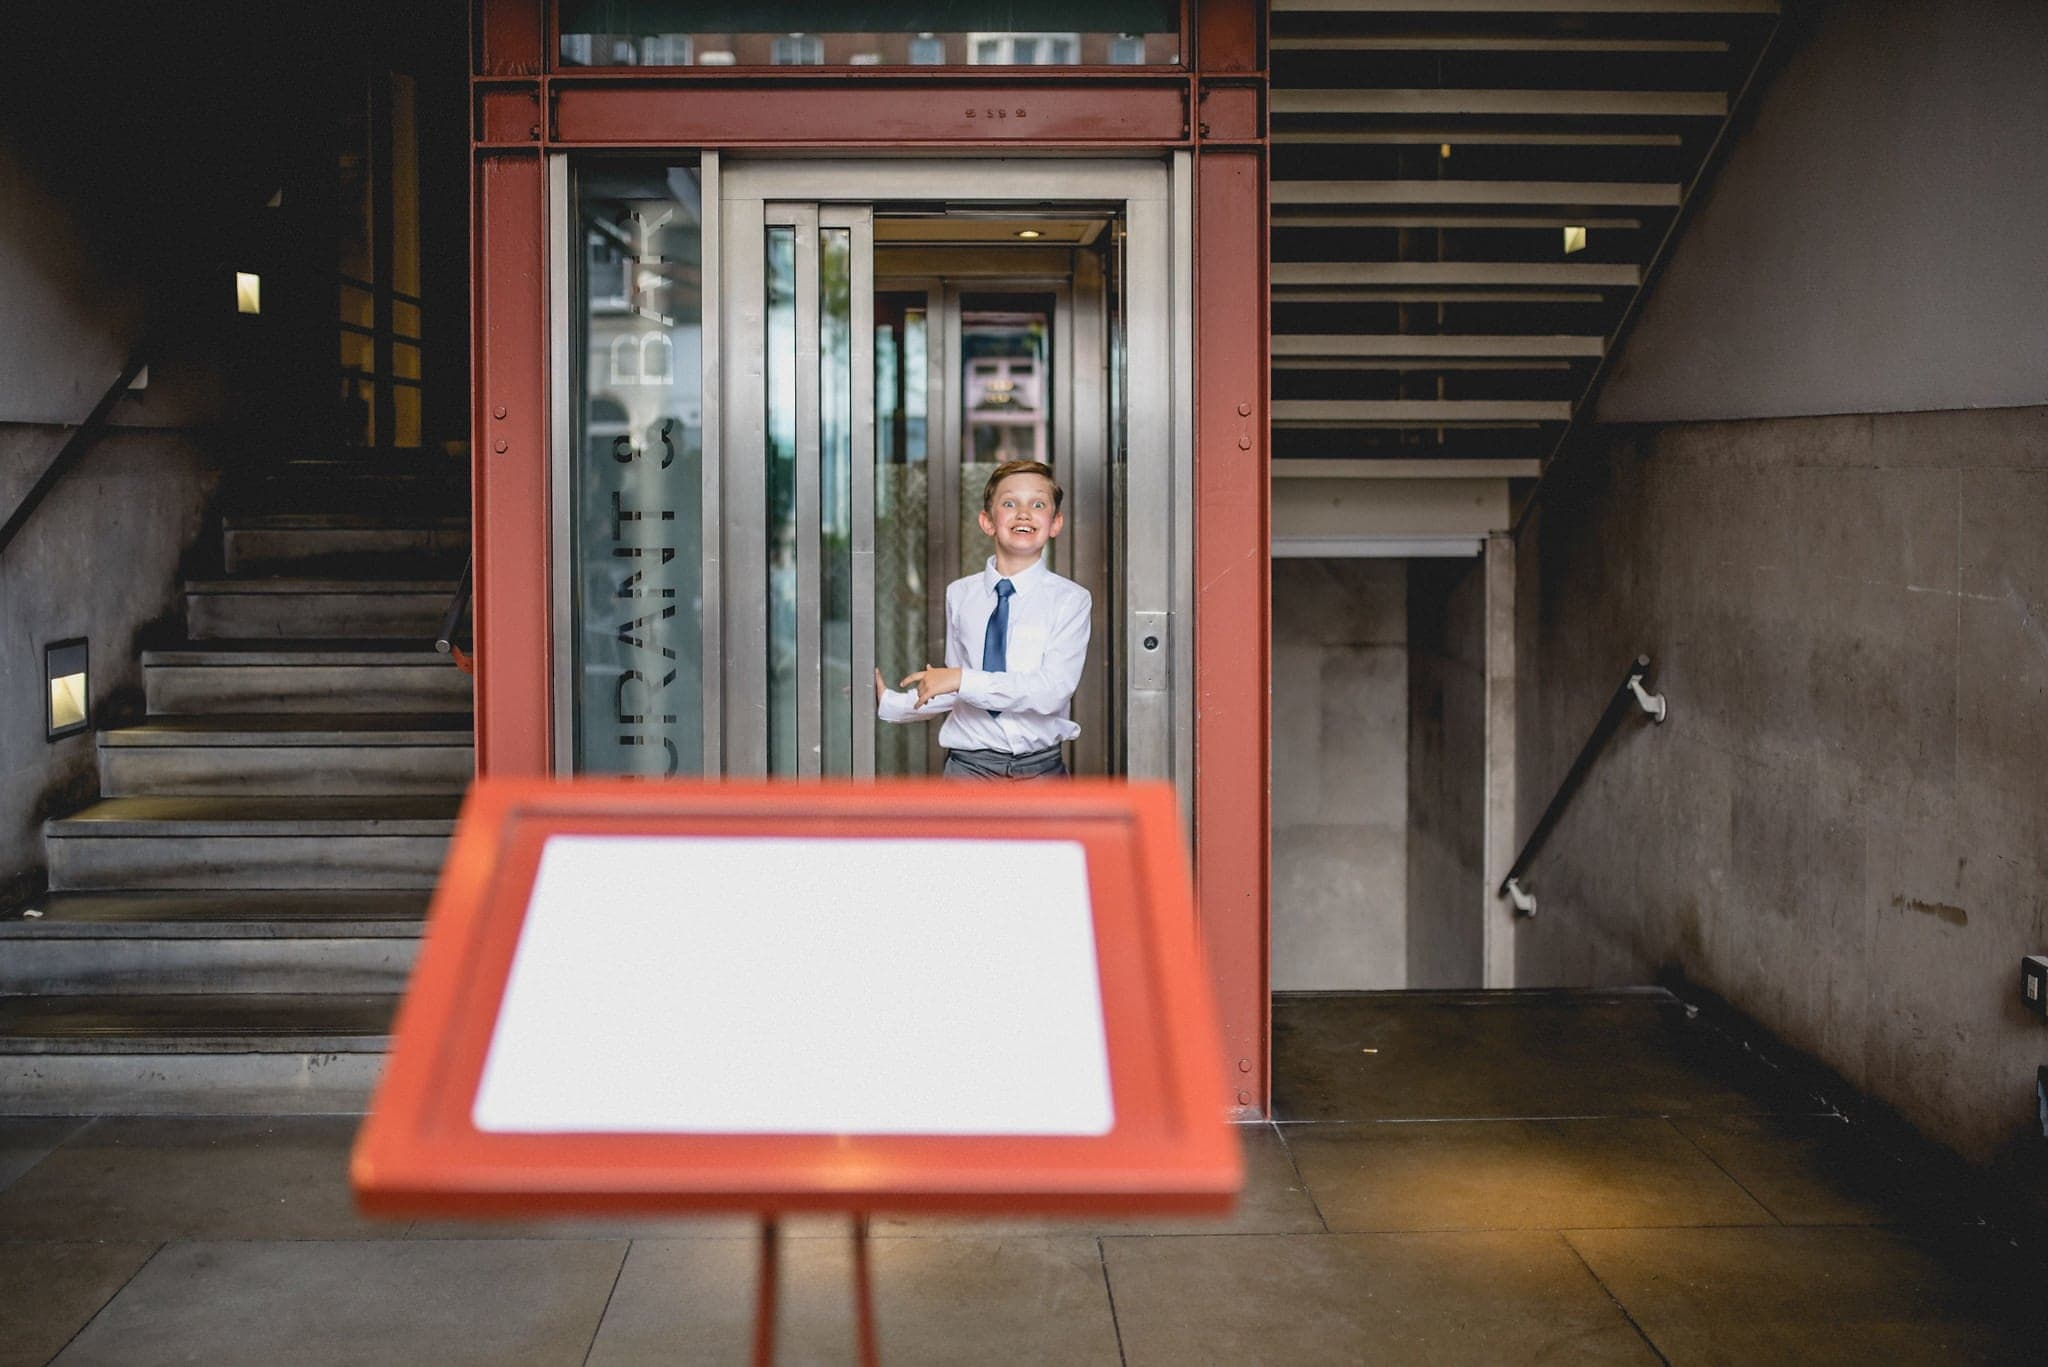 Candid shot of boy in lift at The Bluebird wedding